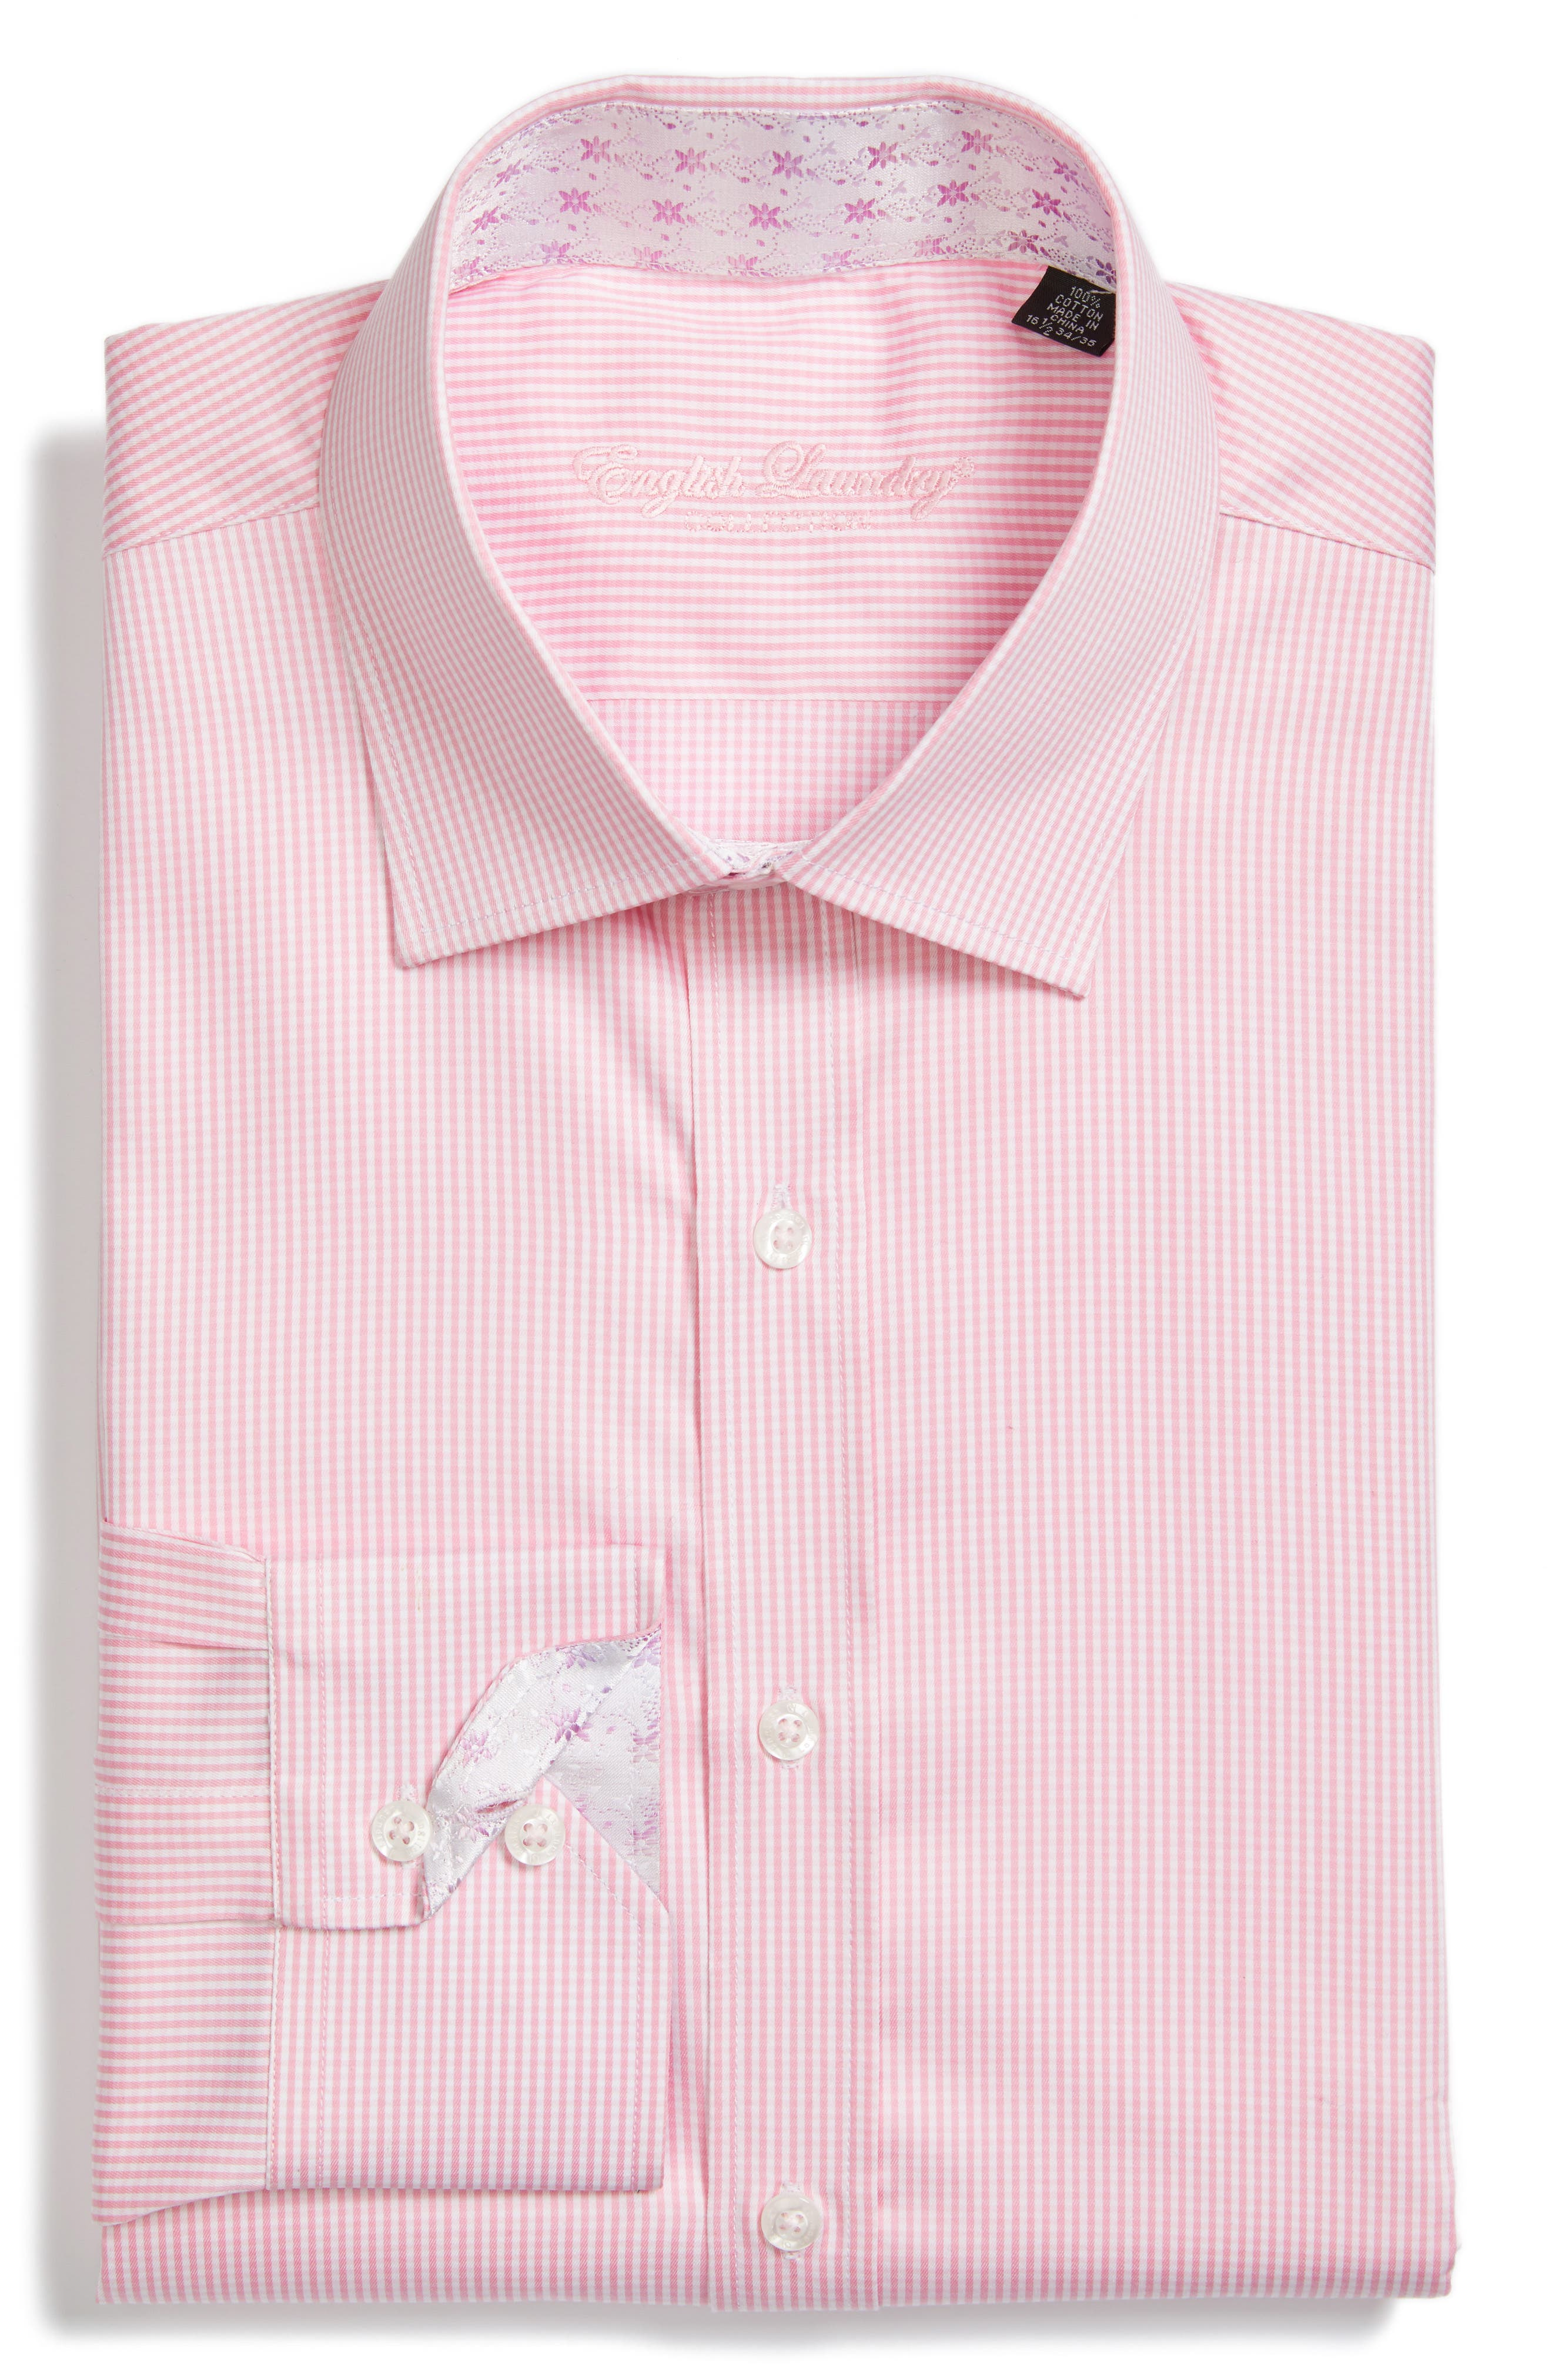 Alternate Image 1 Selected - English Laundry Trim Fit Check Dress Shirt